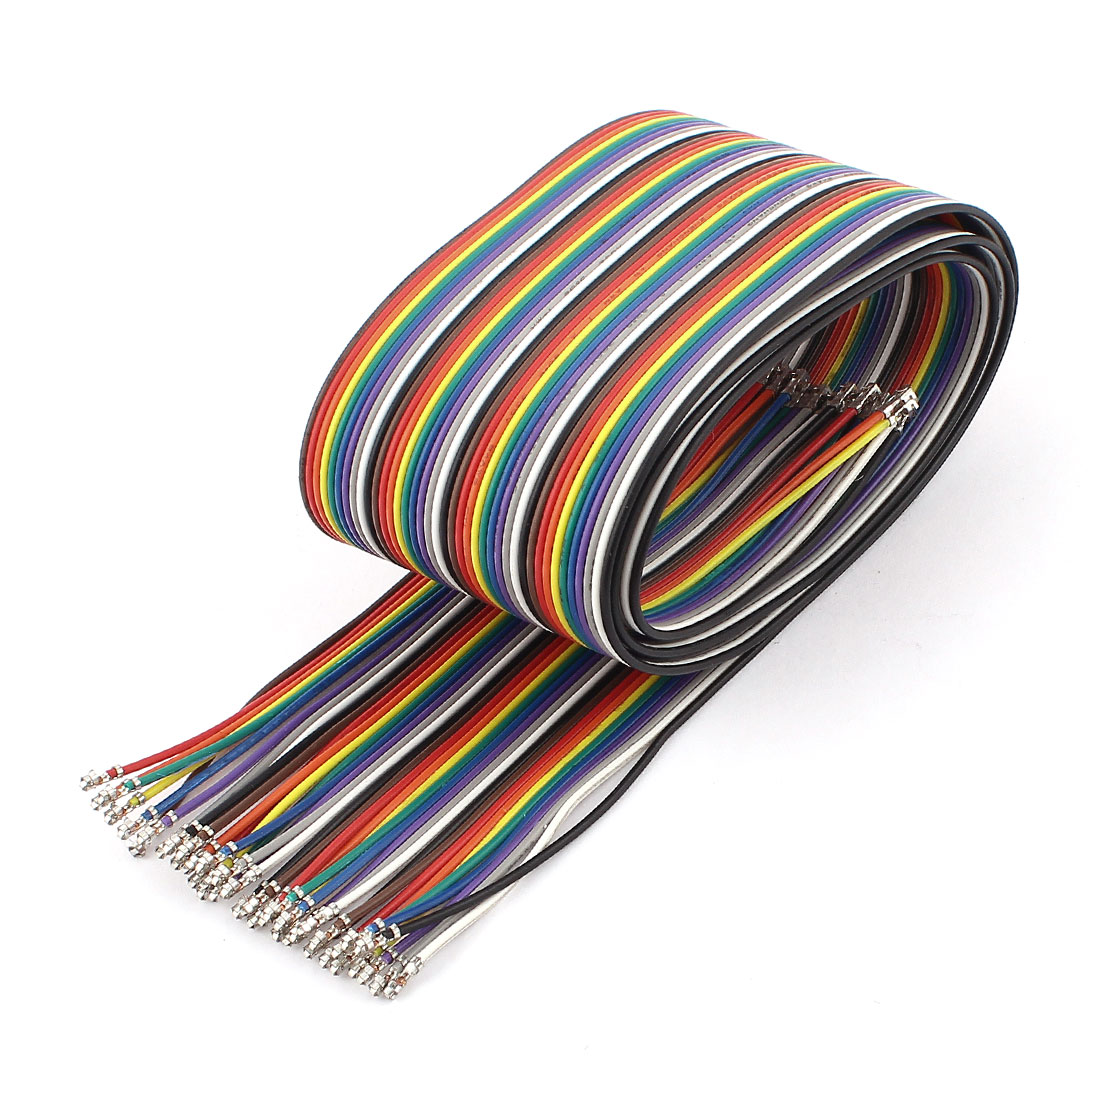 XH2.54 40P 80cm 2.54mm Flat Rainbow Ribbon Wire Male to Male Connector